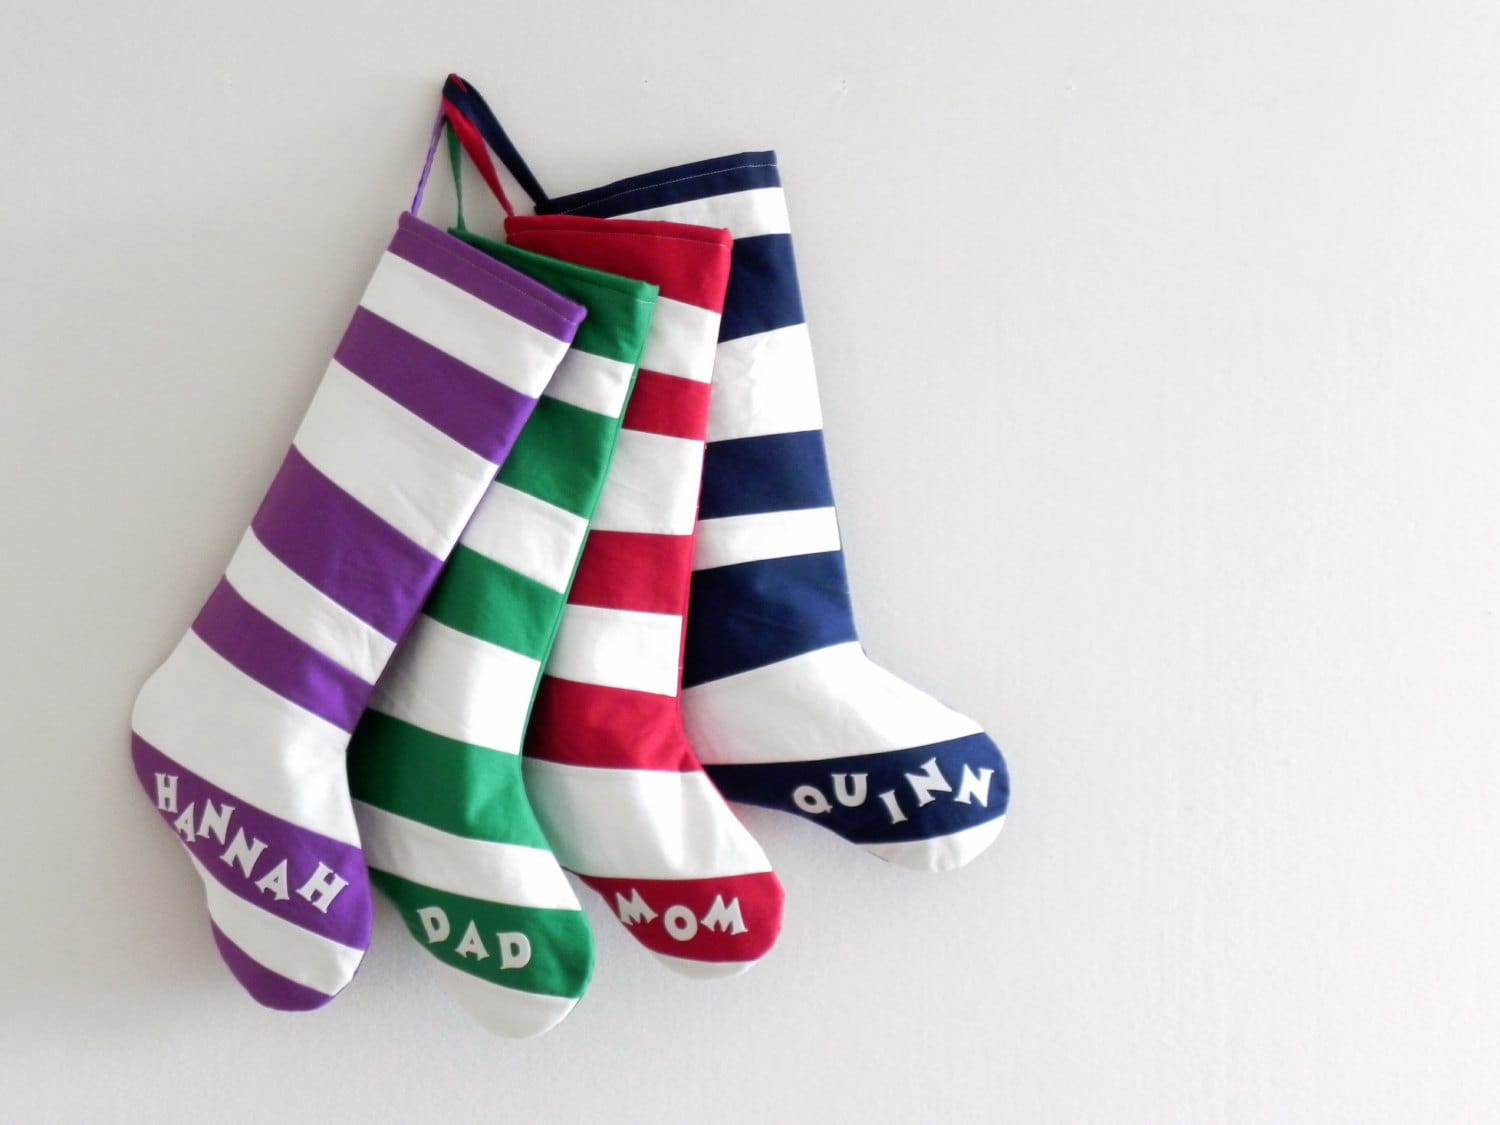 Quilted Personalized Christmas Stocking Personalized Stocking, Kids Family  Stockings, Modern Striped Boy Girl Holiday Decoration, Dr Seuss